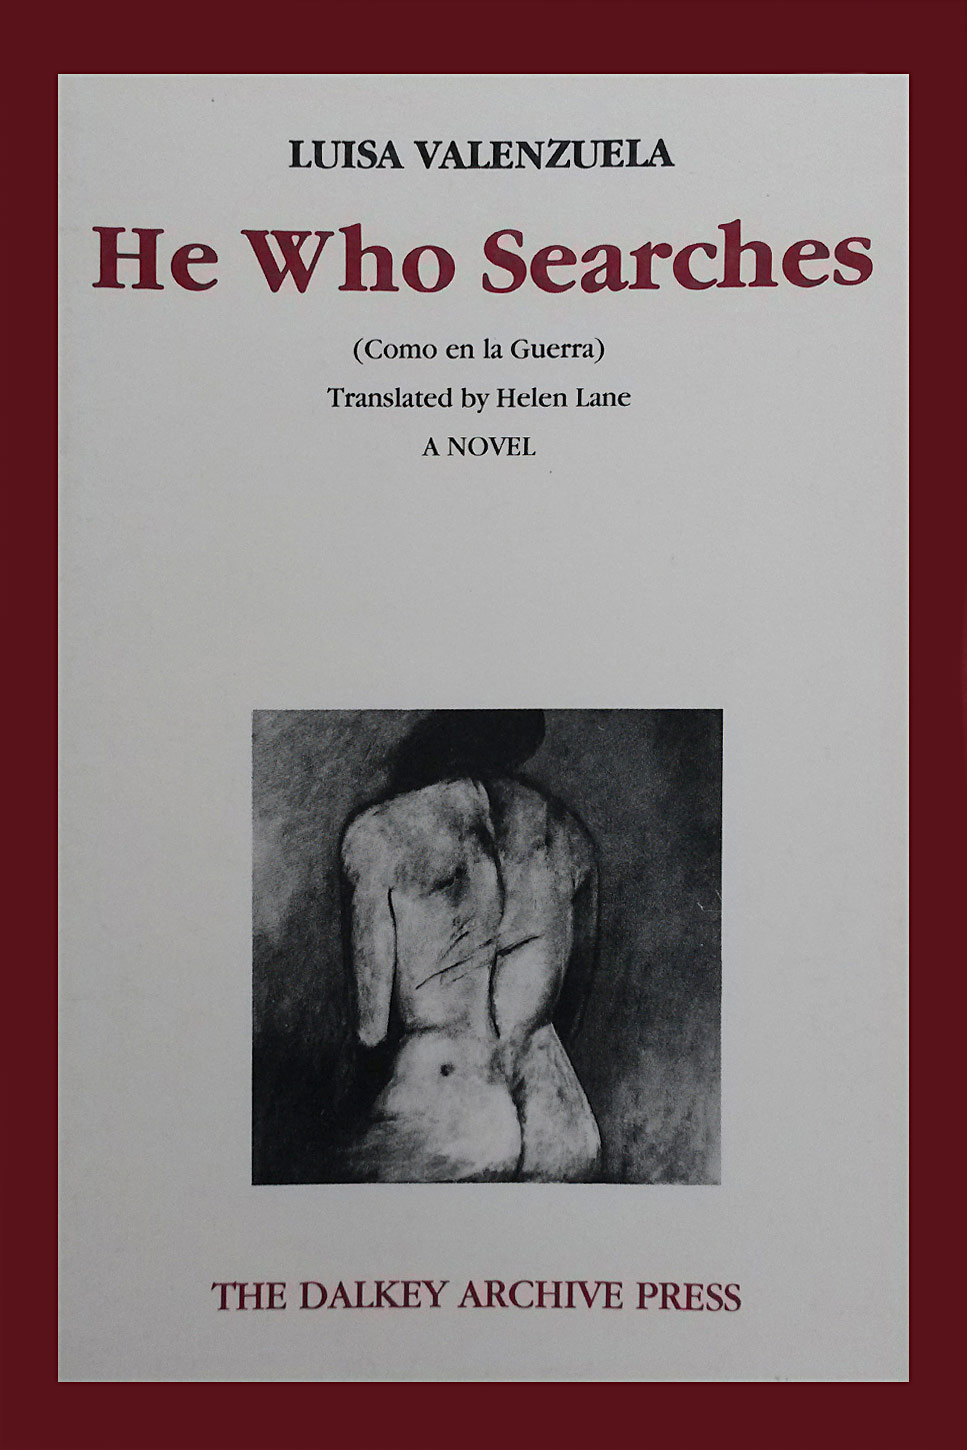 He Who Searches